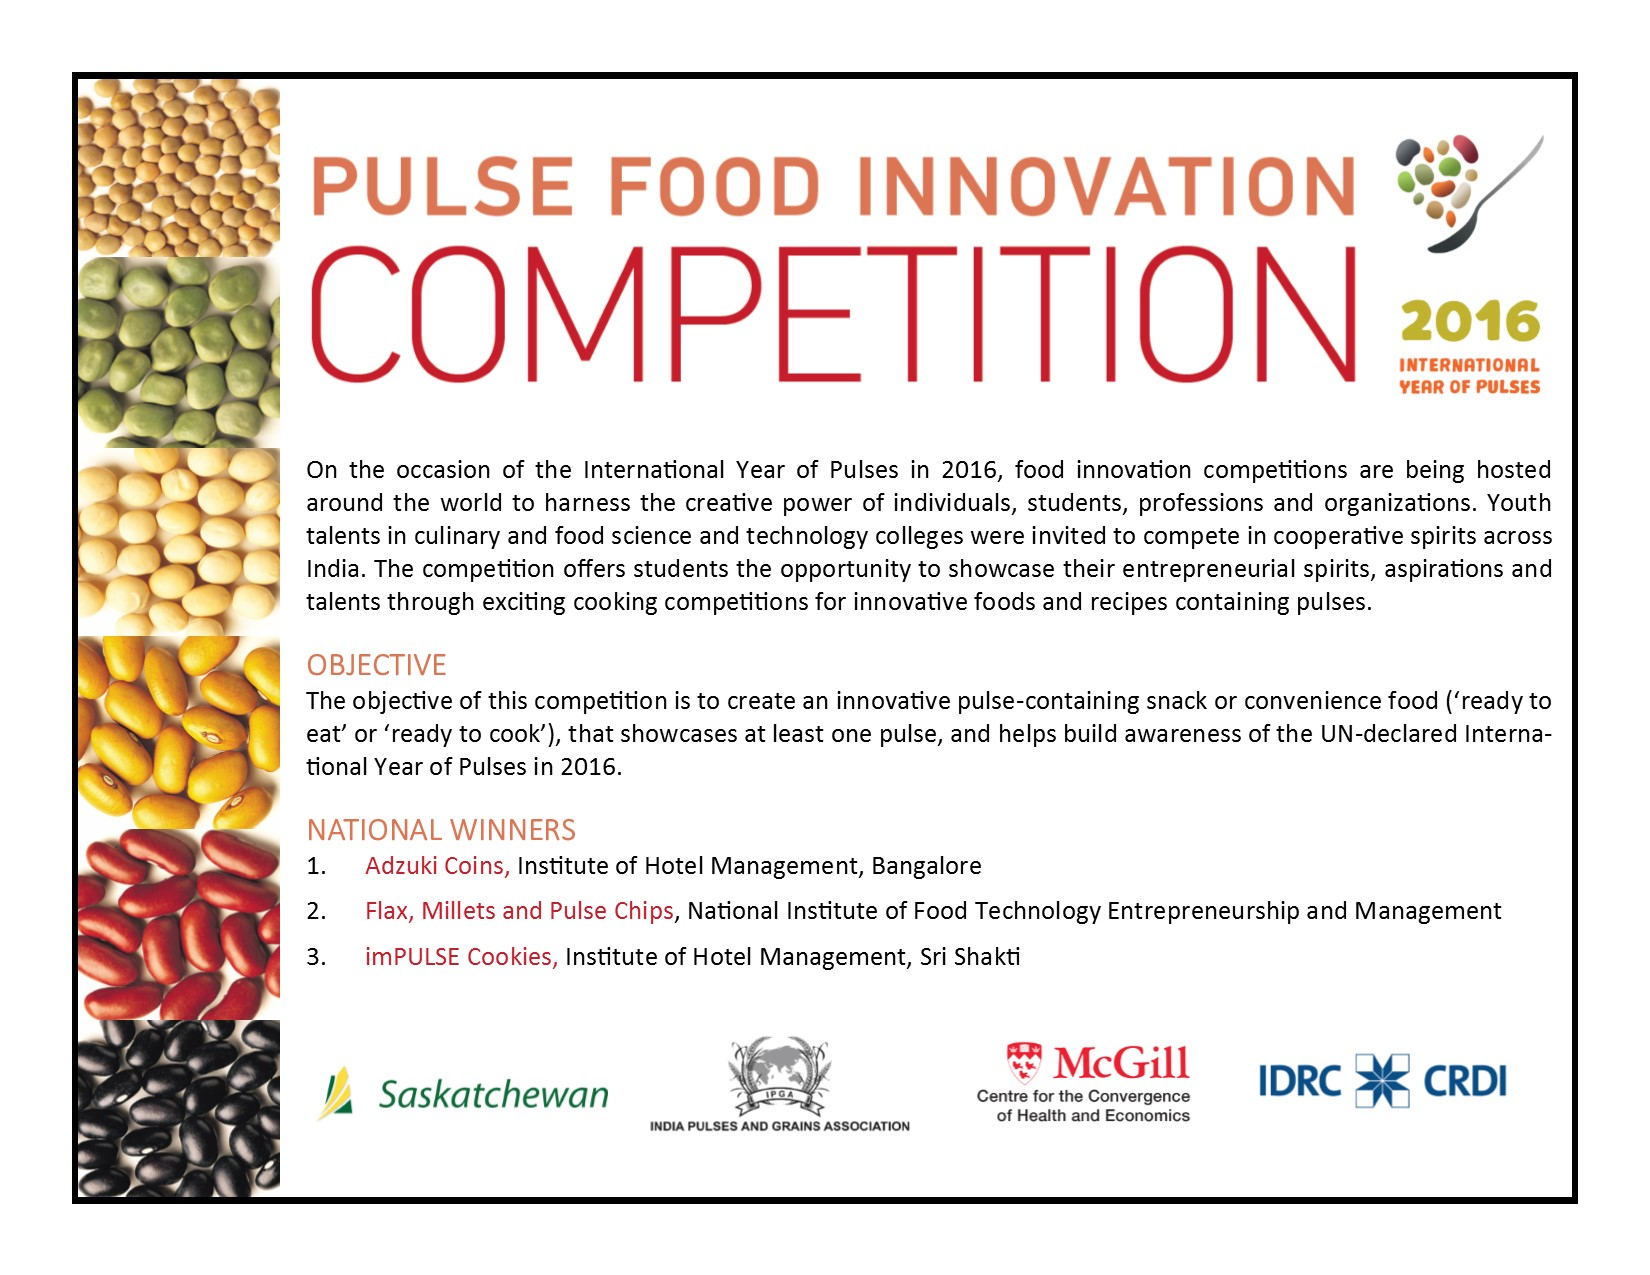 Hotel Pulse Impulse India Pulse Food Innovation Competition Desautels Faculty Of